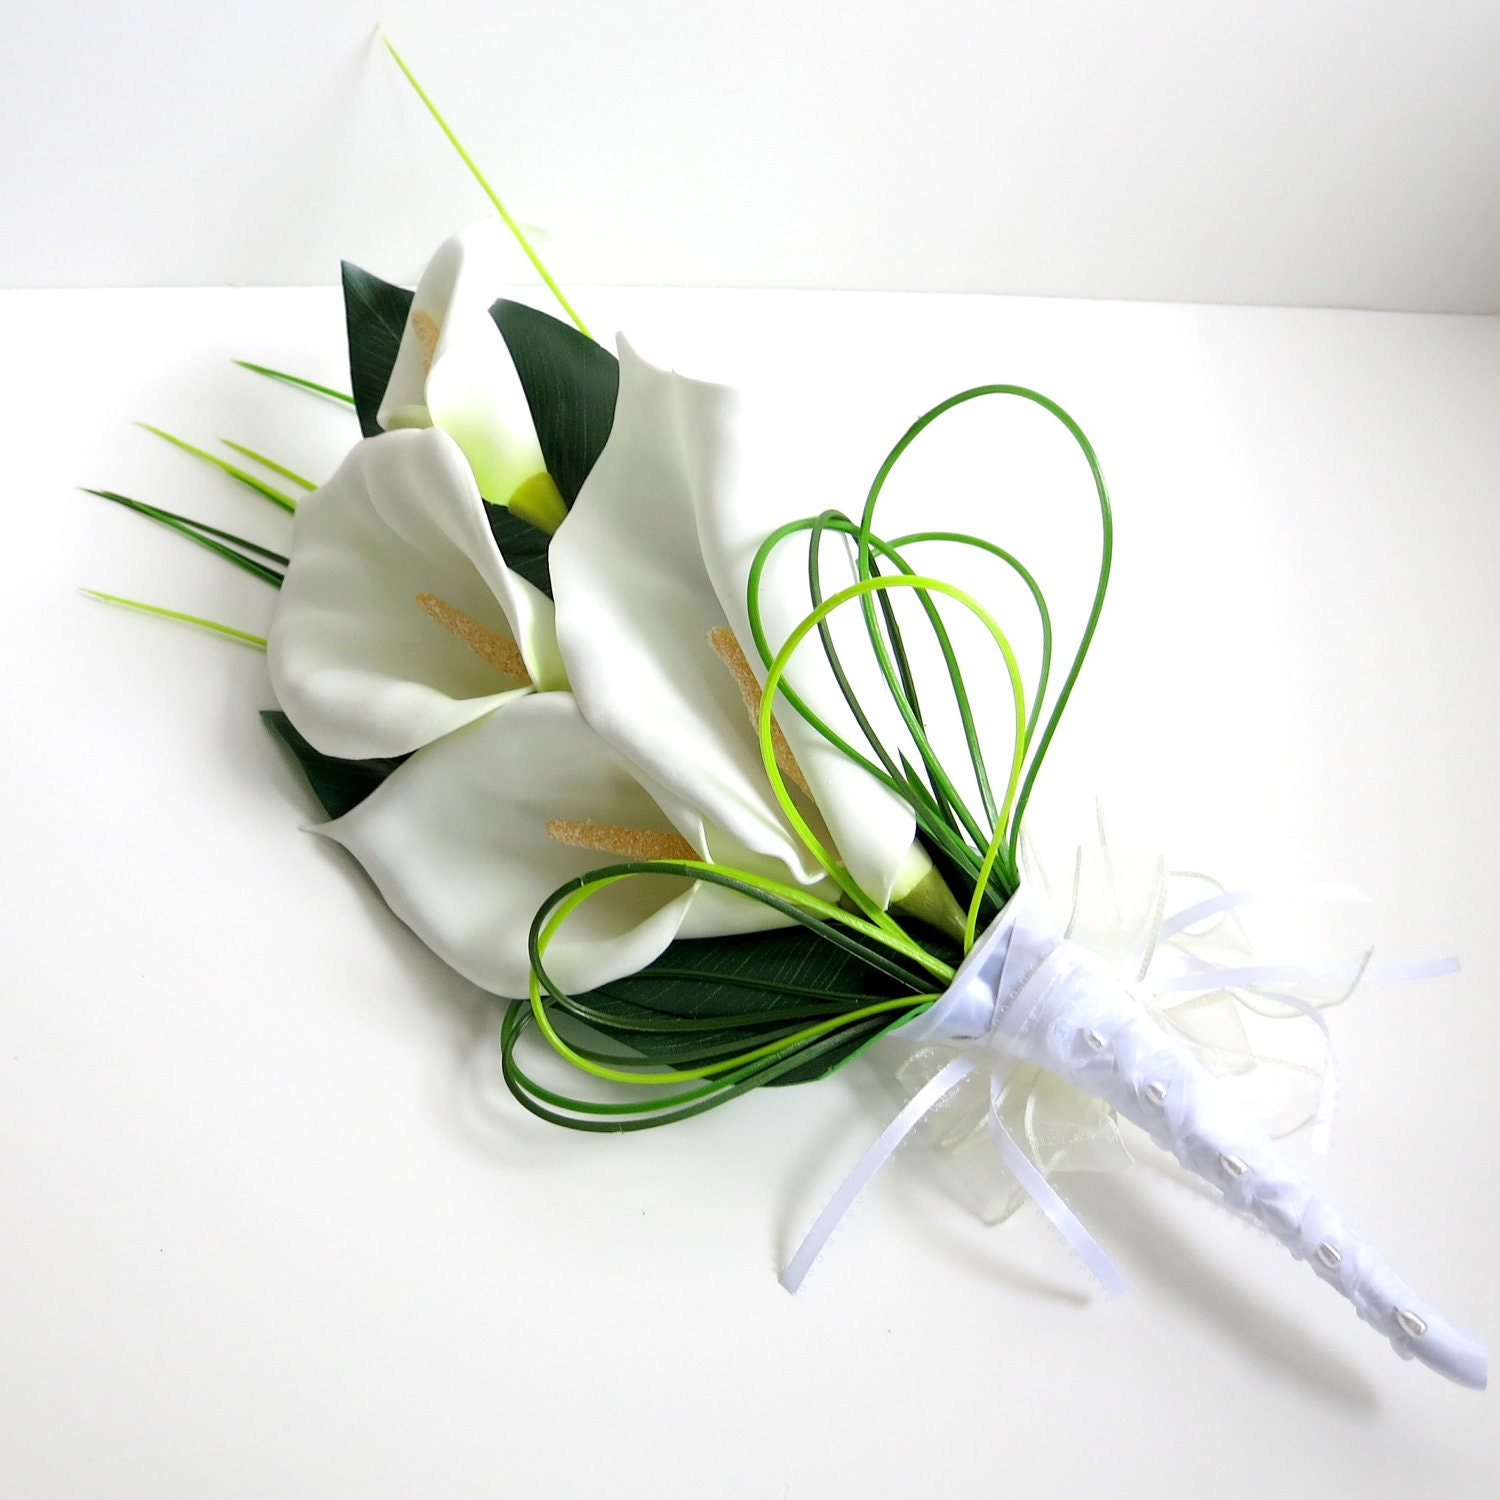 Emejing wedding bouquets with calla lilies images styles ideas how to make a wedding bouquet with calla lilies floristry archives izmirmasajfo Choice Image